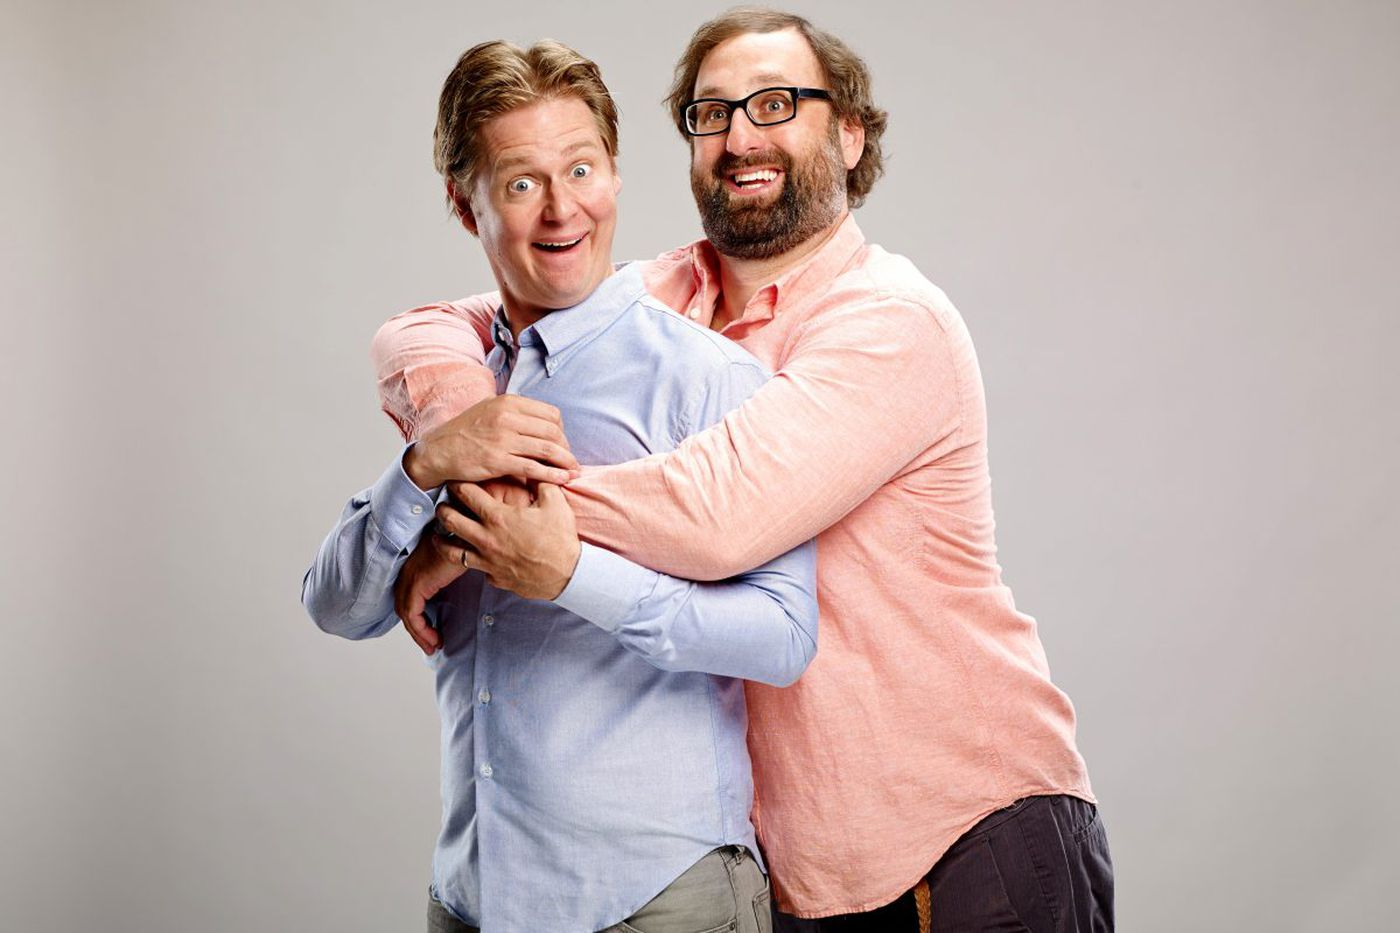 Tim and Eric's Eric on his tough Philly past, 'Awesome' present